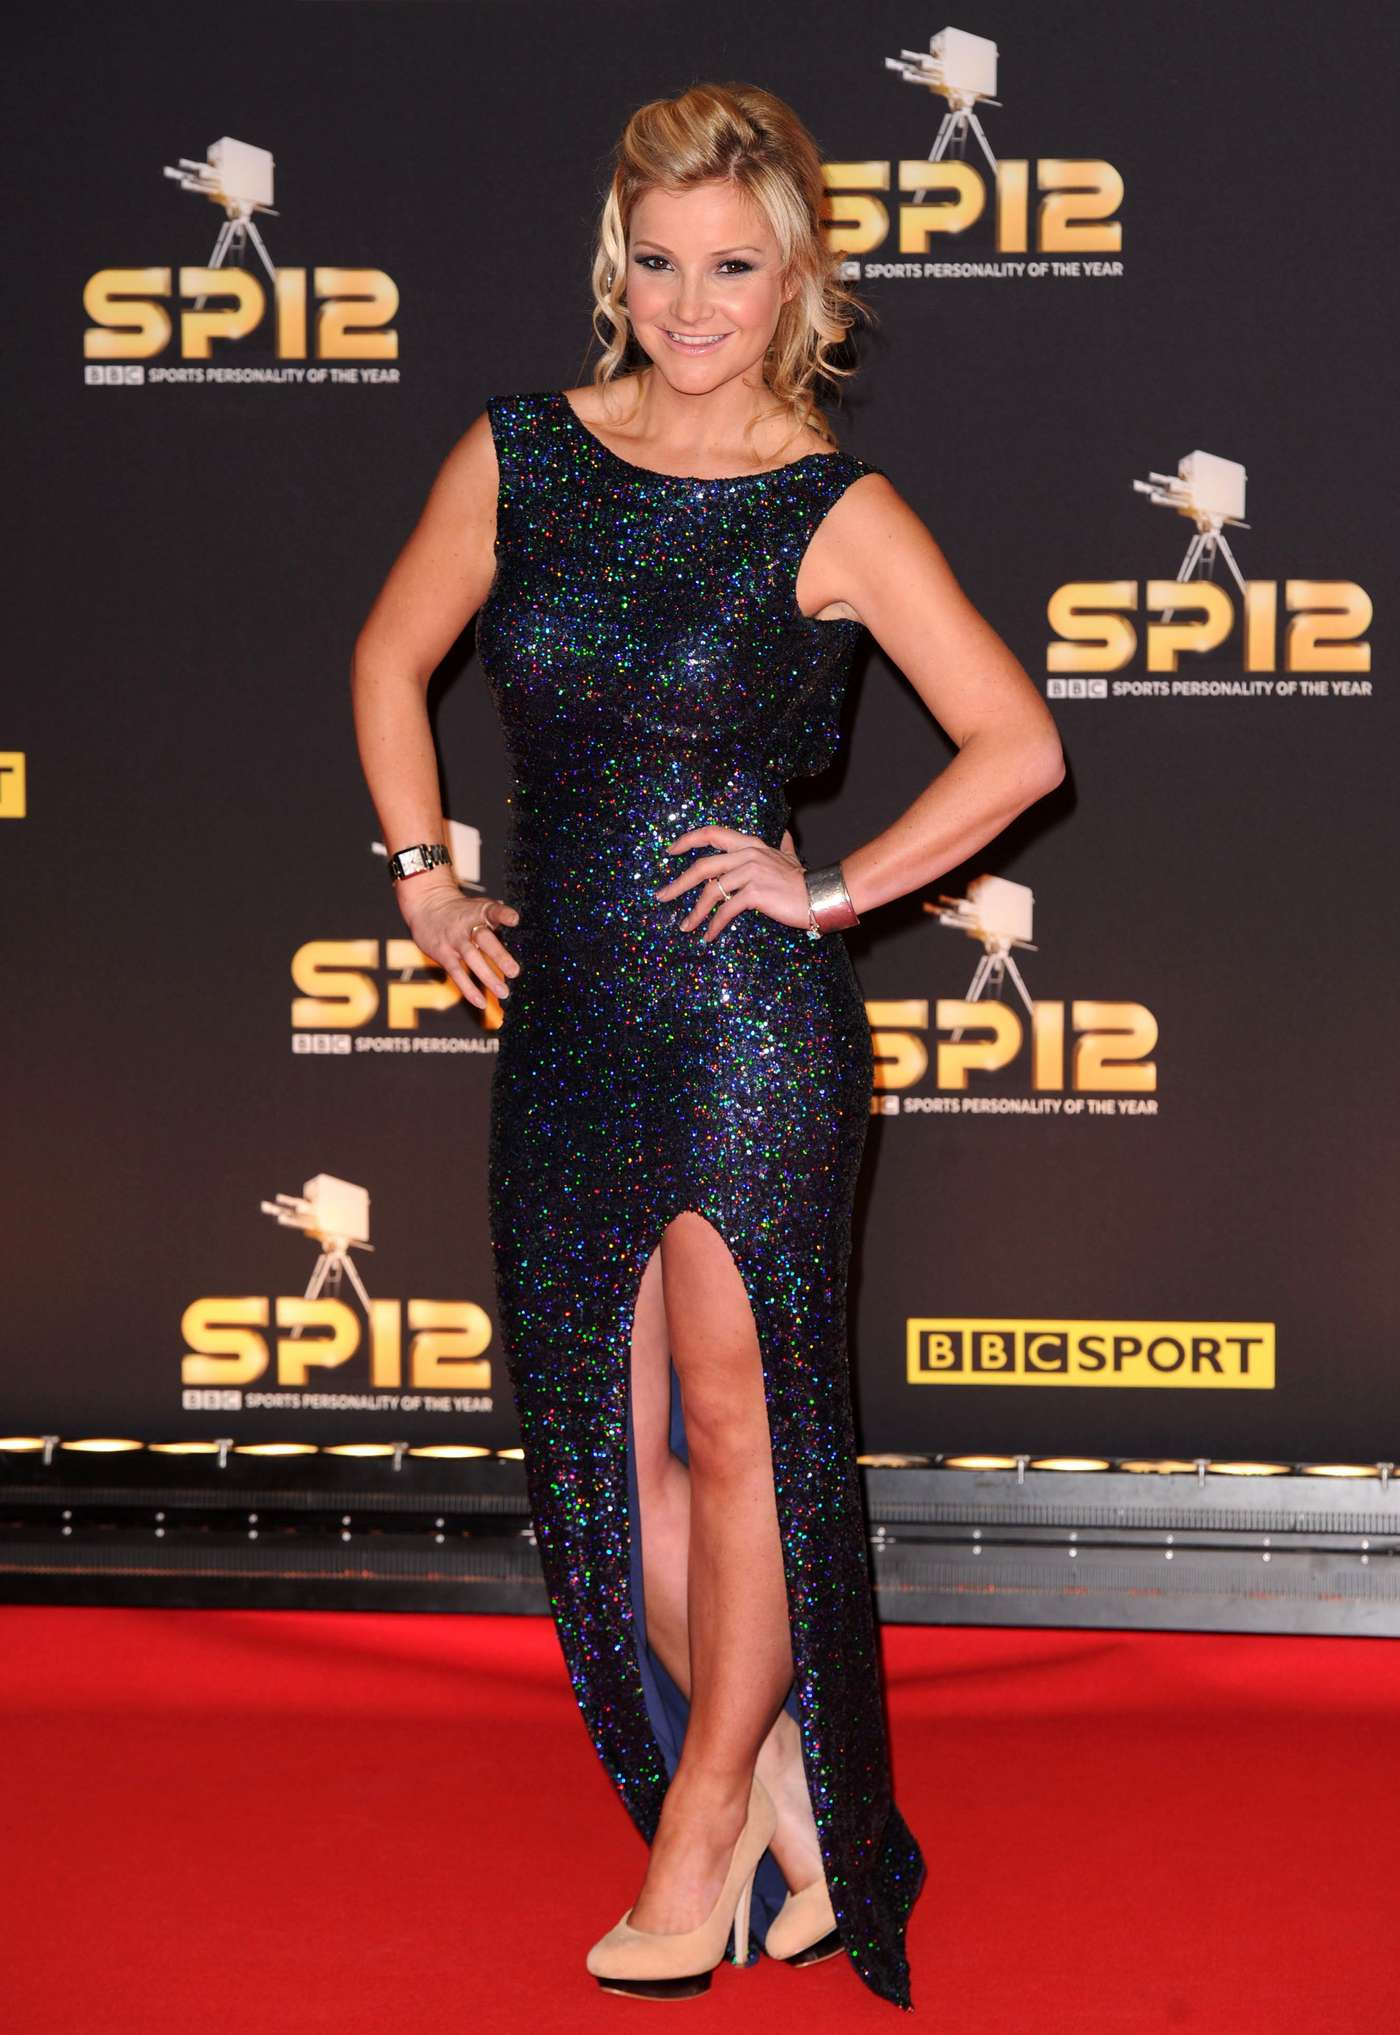 Helen Skelton BBC Sports Personality of the Year Award Ceremony